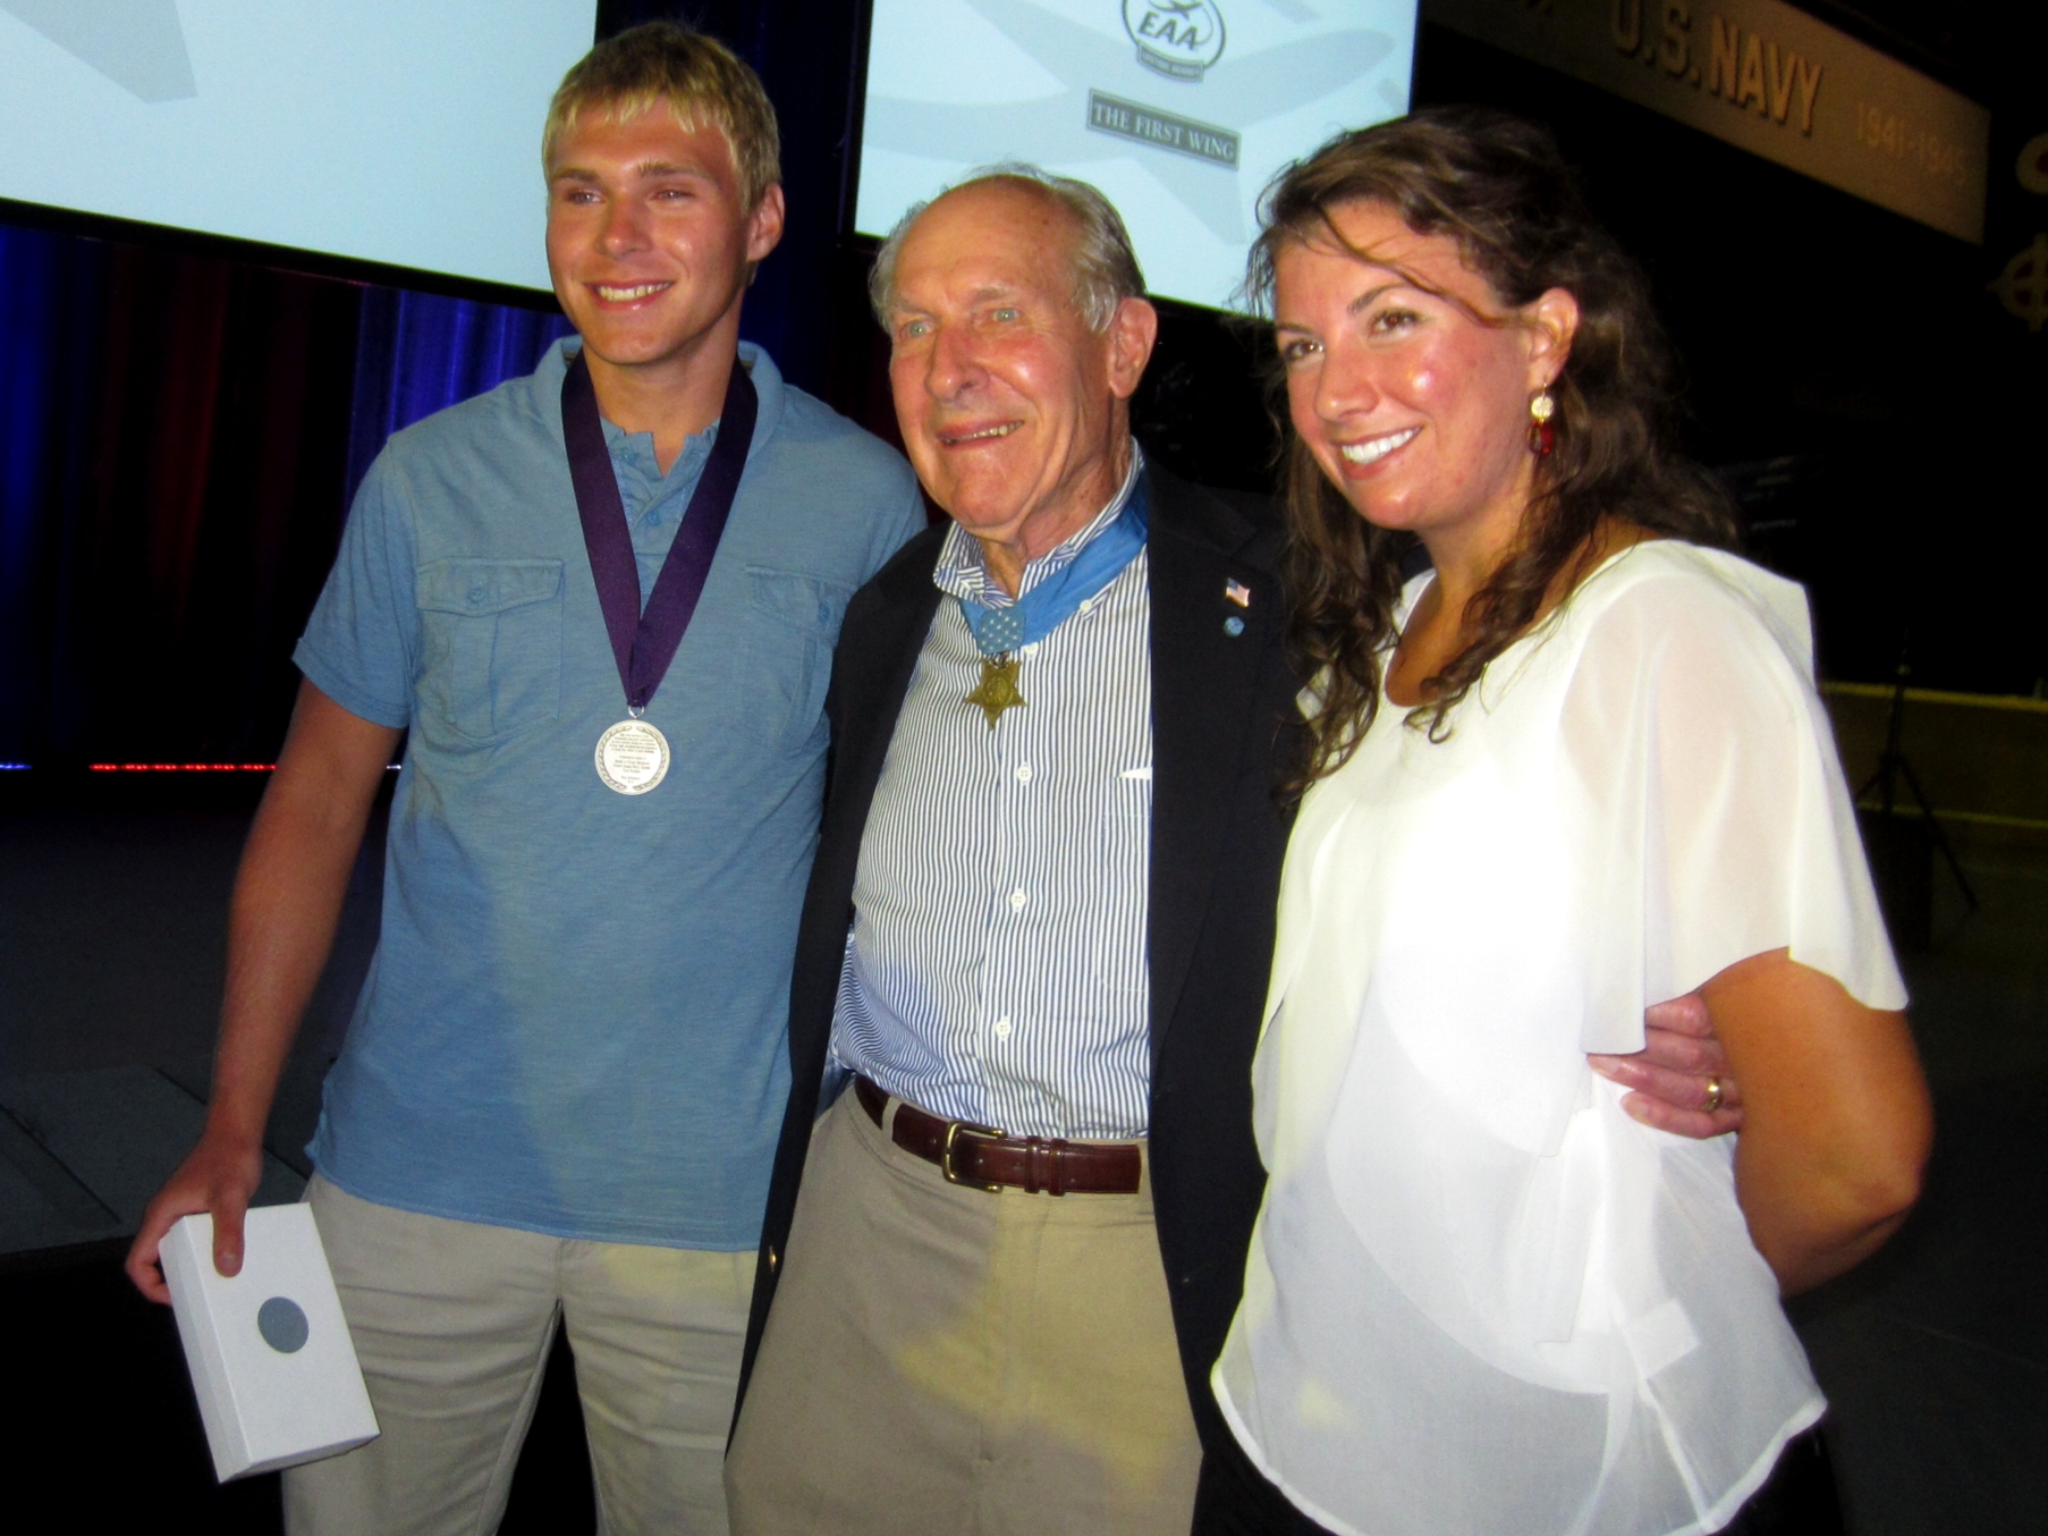 Tom with scholarship recipients, Lucas Benish (2012) and Margaret Viola (2011)